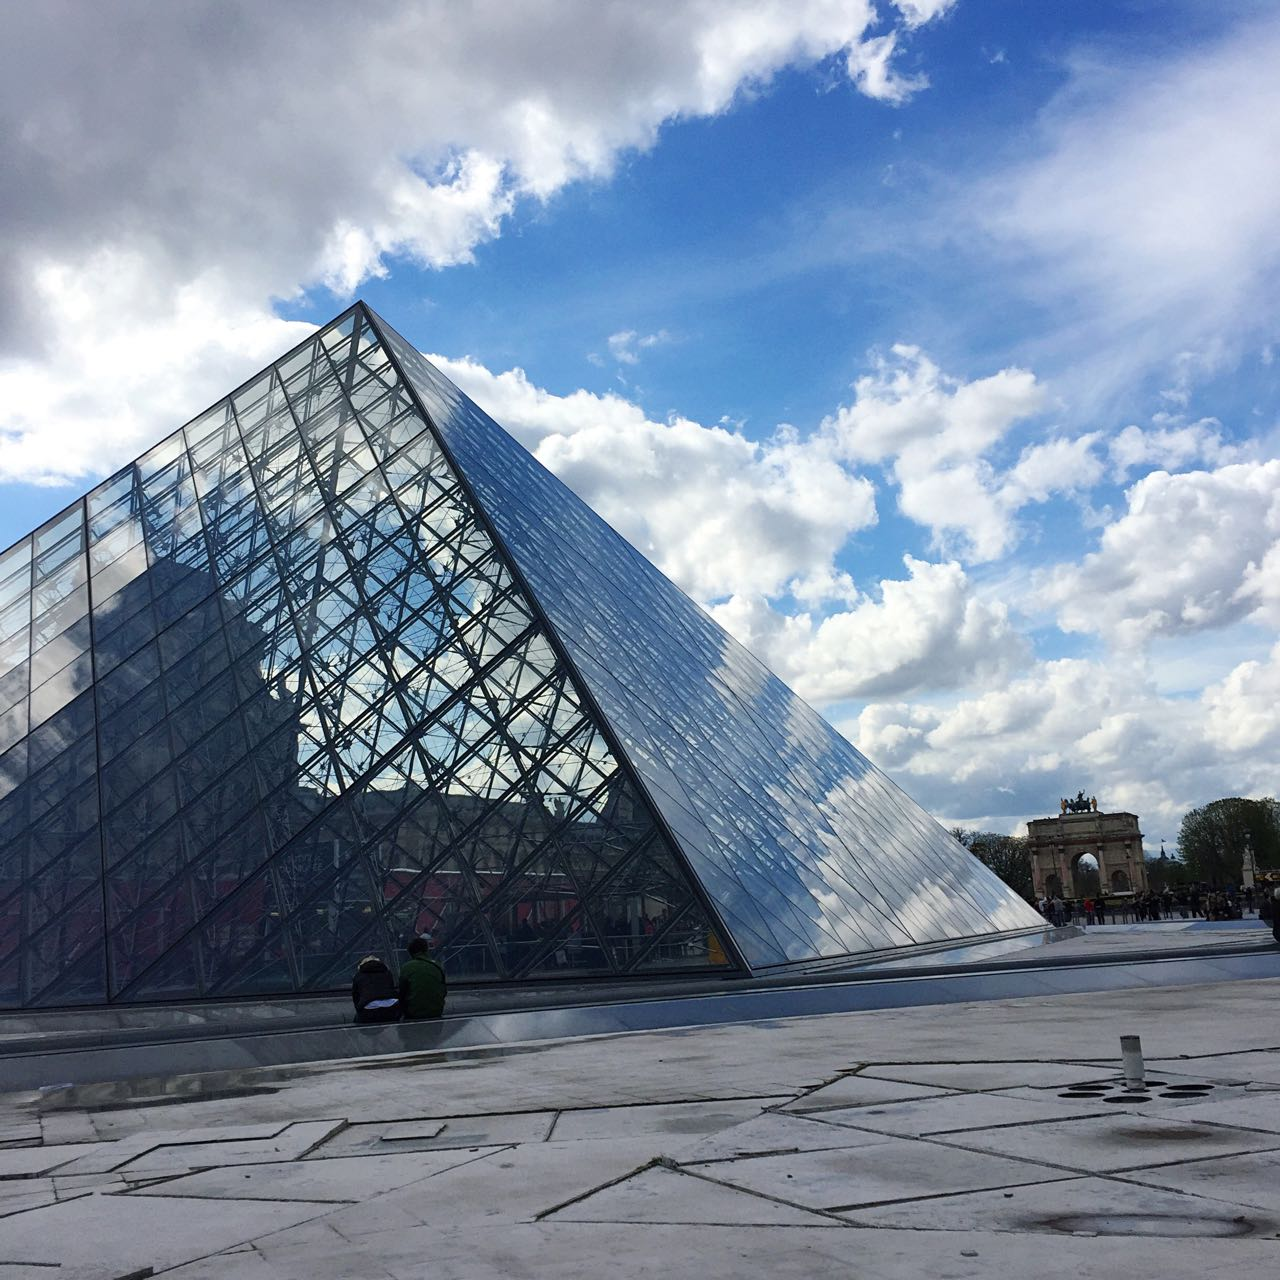 Les Pyramides at the Louvre